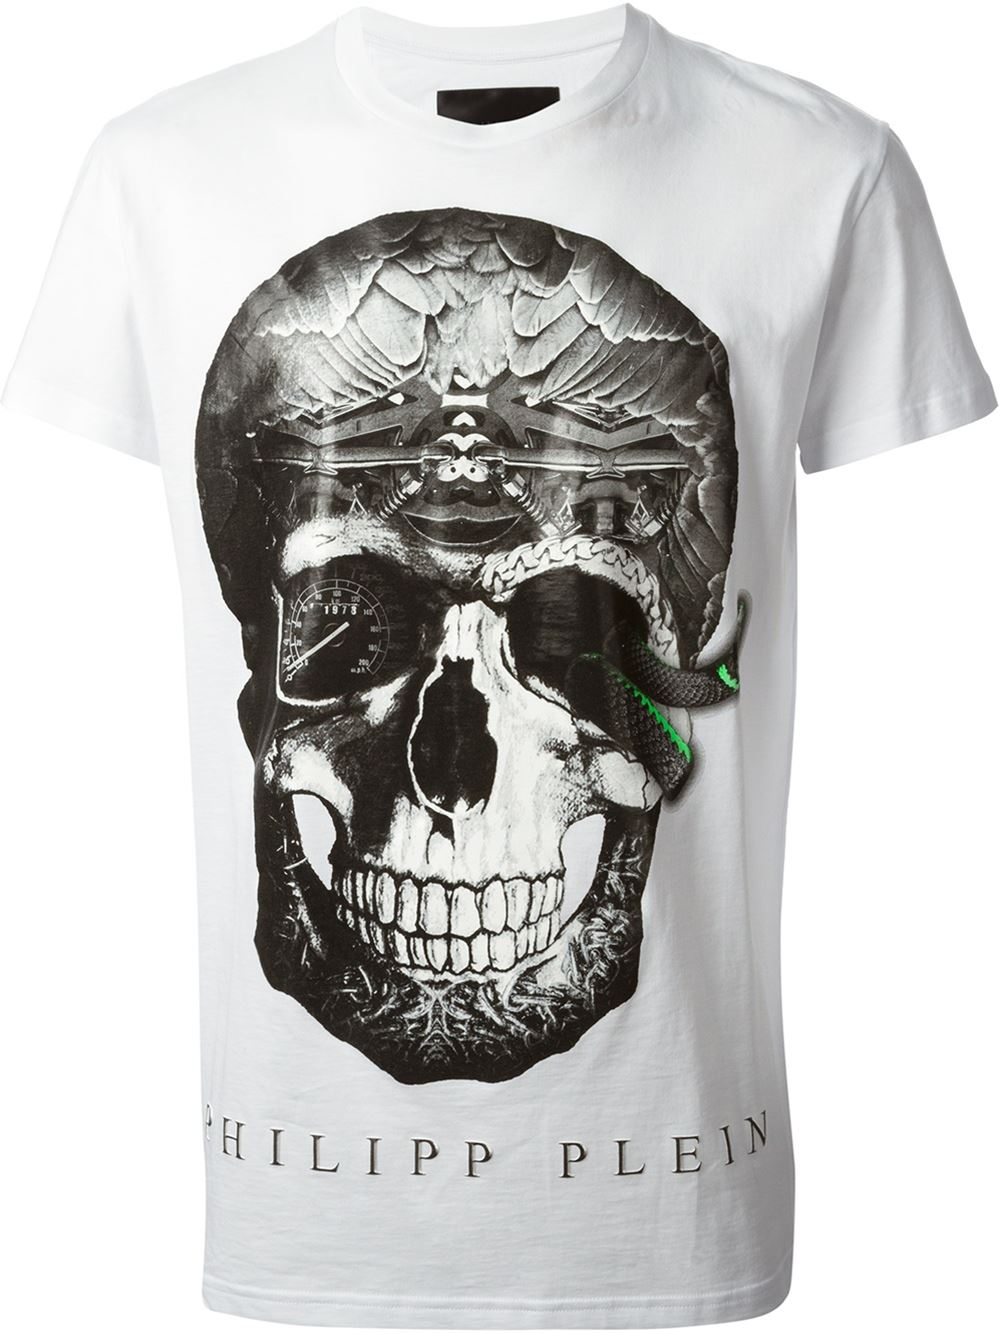 philipp plein 39 david 39 t shirt in white for men lyst. Black Bedroom Furniture Sets. Home Design Ideas